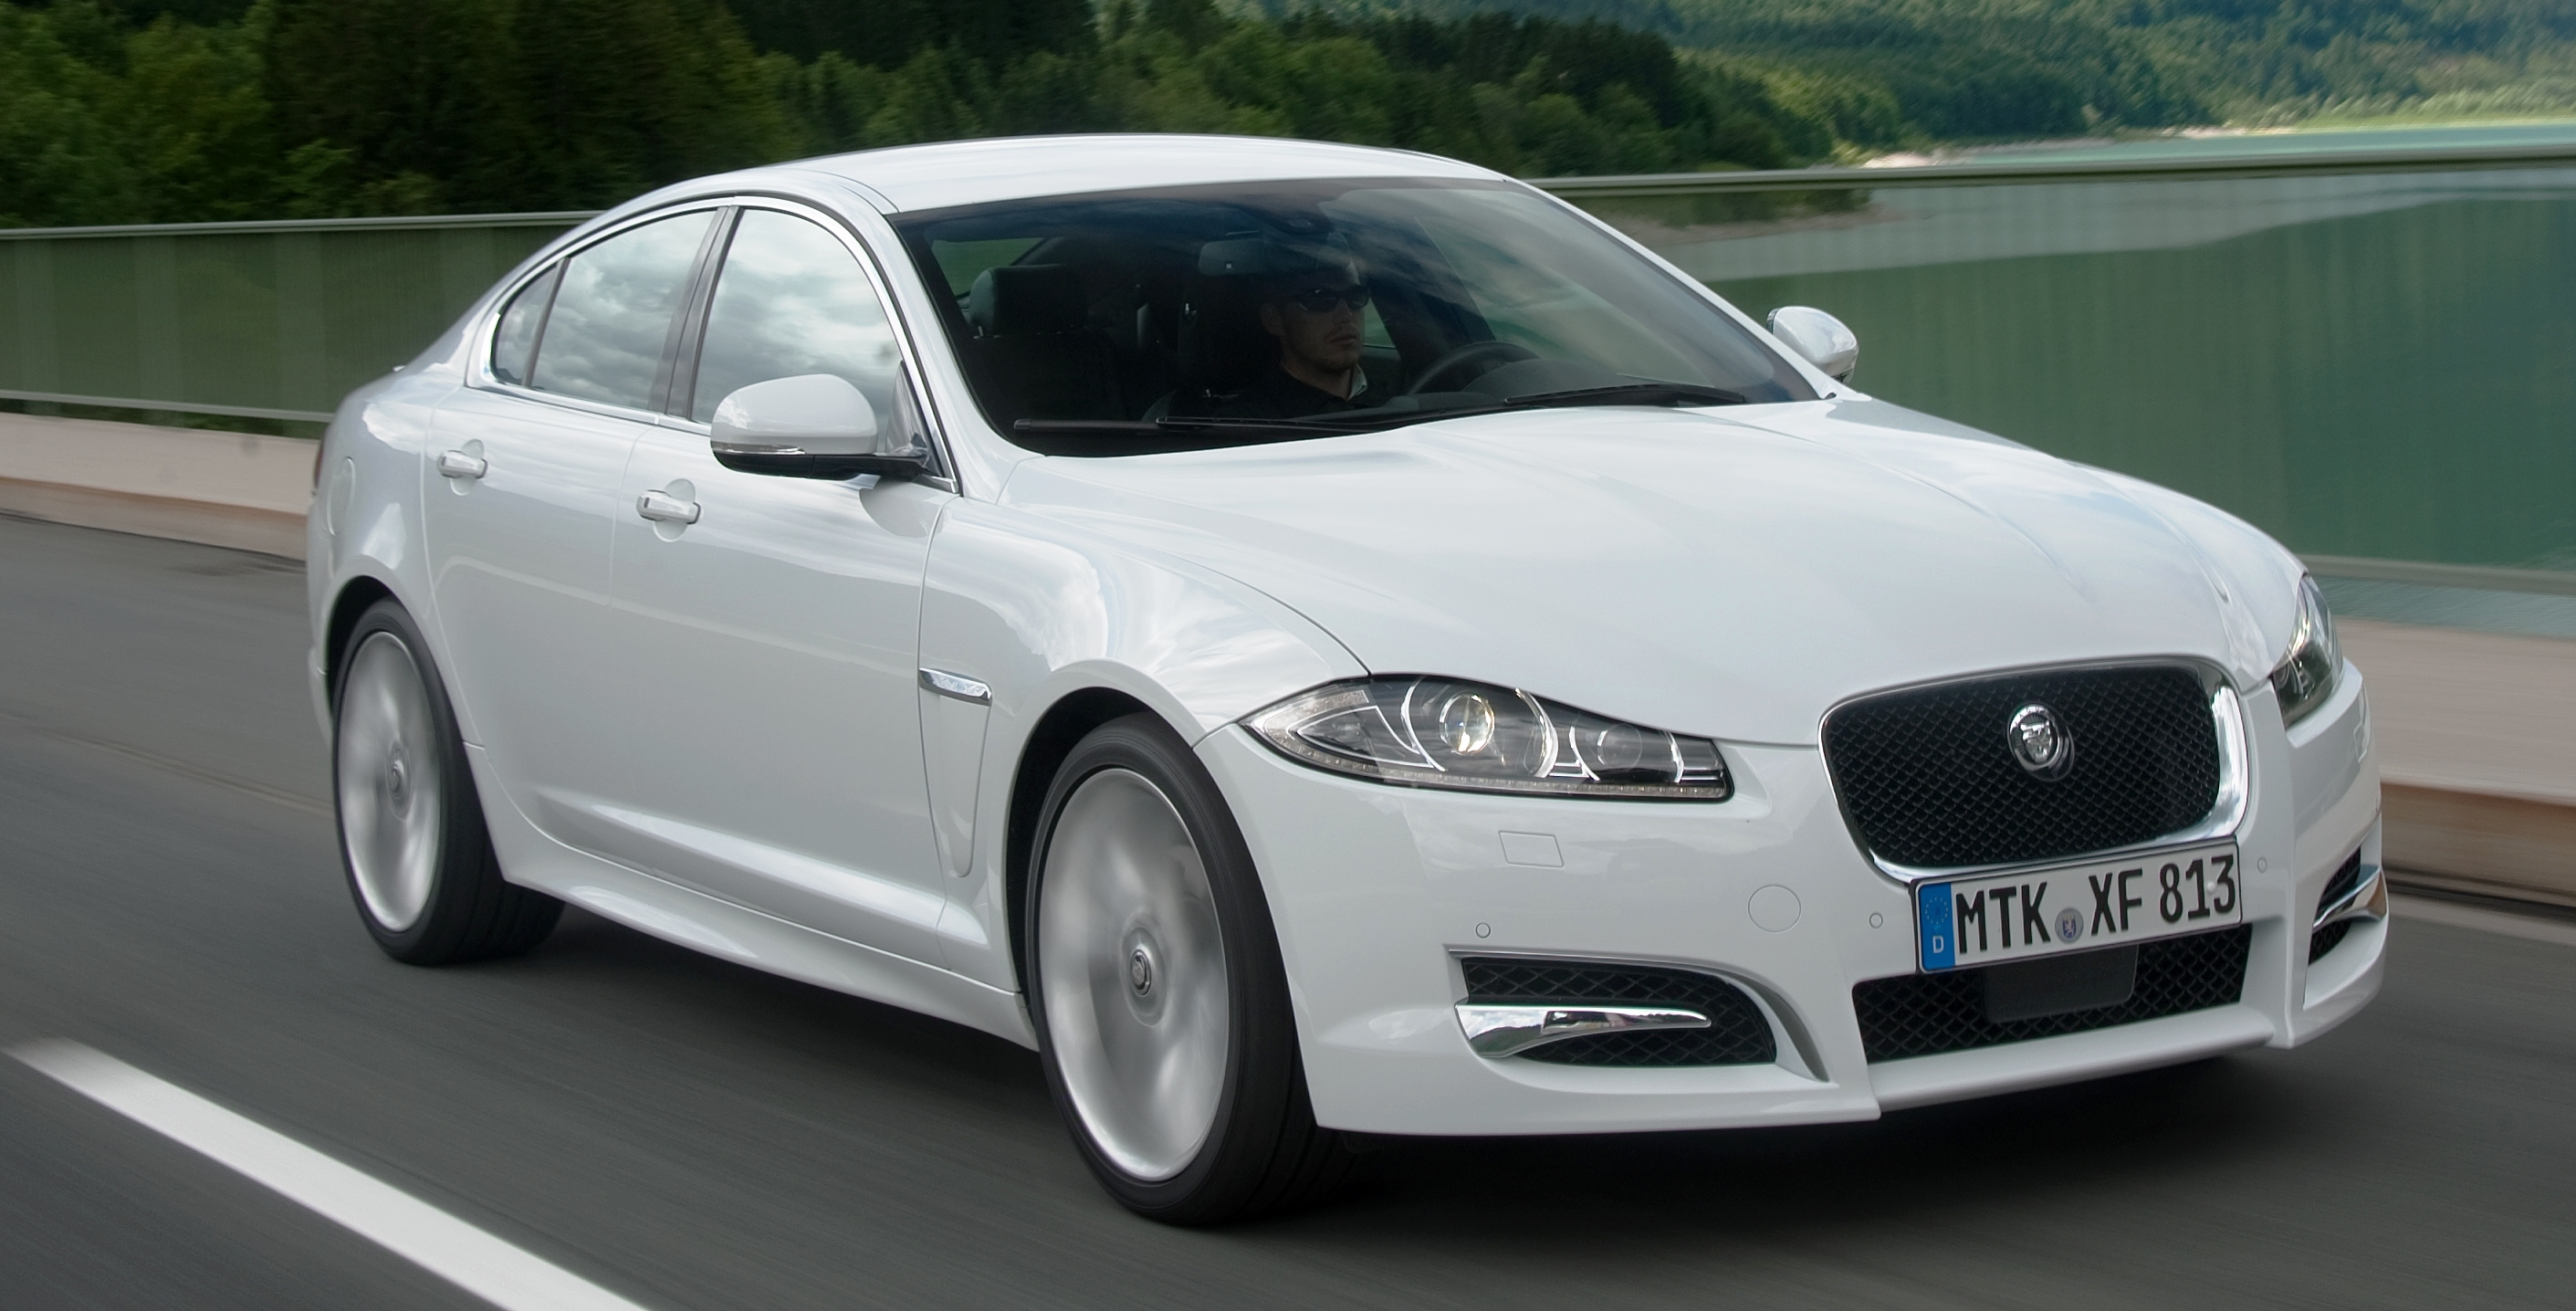 edition buy for fs trade forum xf premium classifieds sale luxury img private northeast jaguar